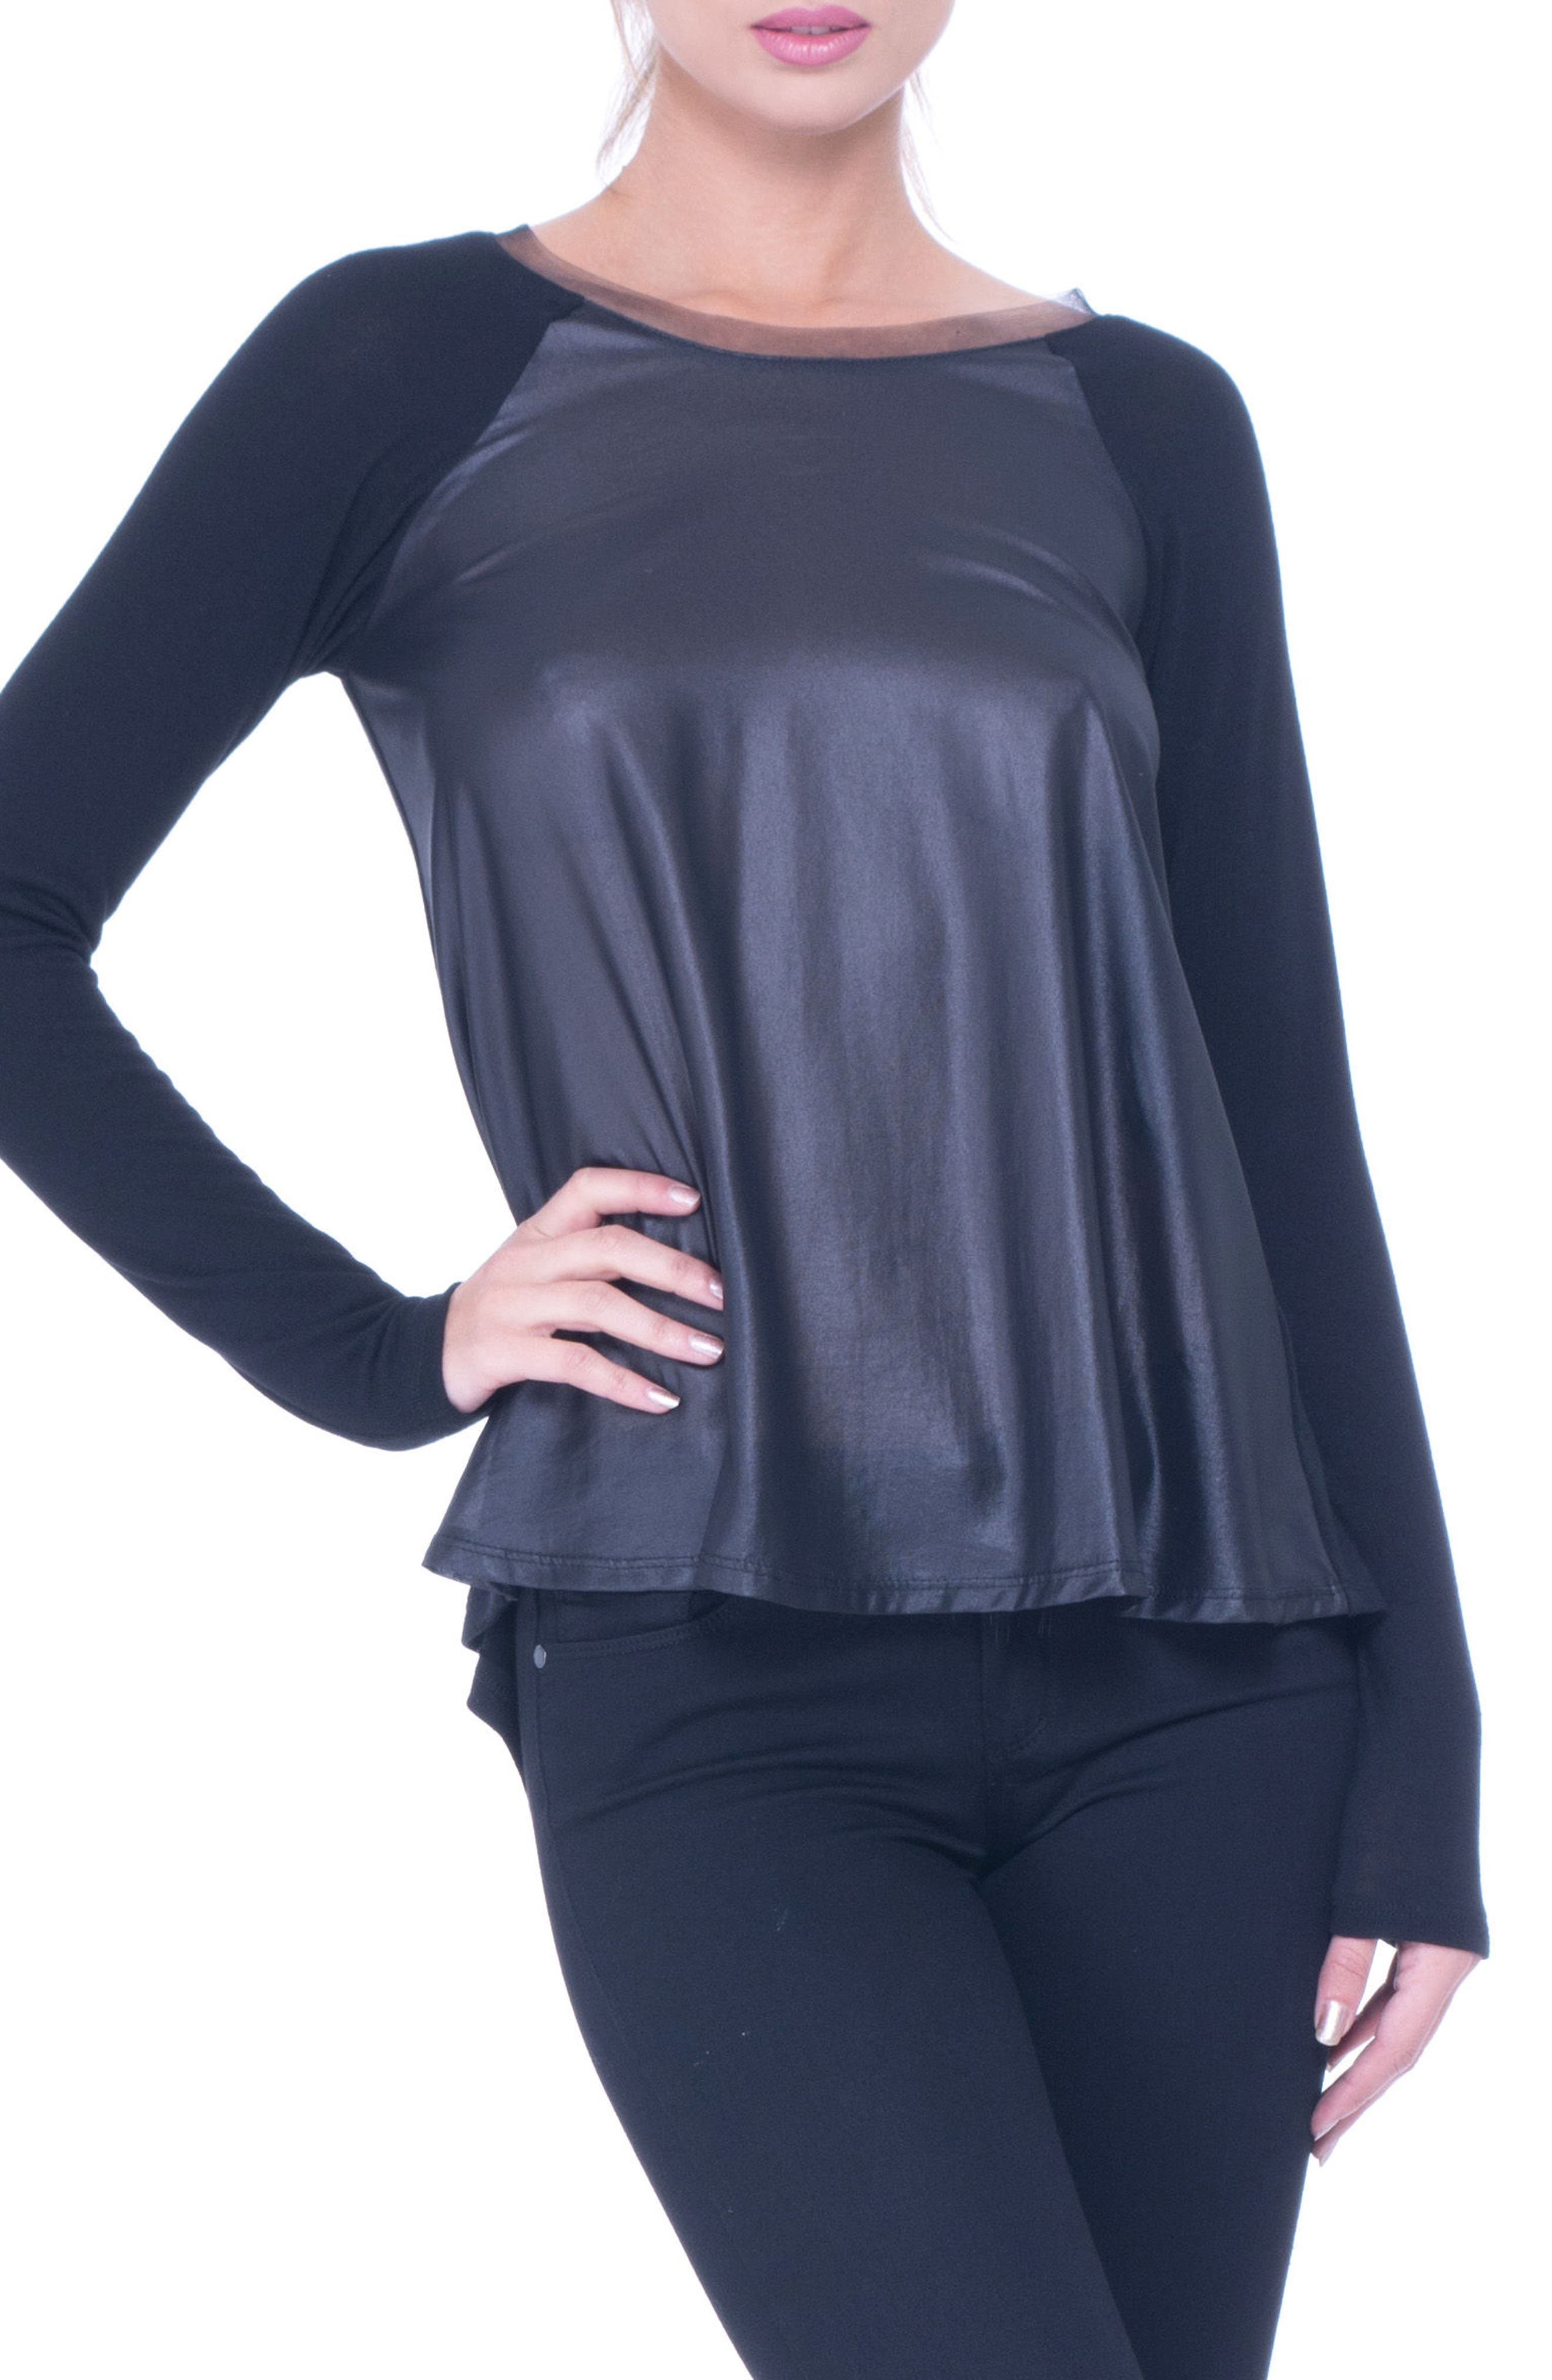 Main Image - Olian Elena Faux Leather & Chiffon Maternity Top